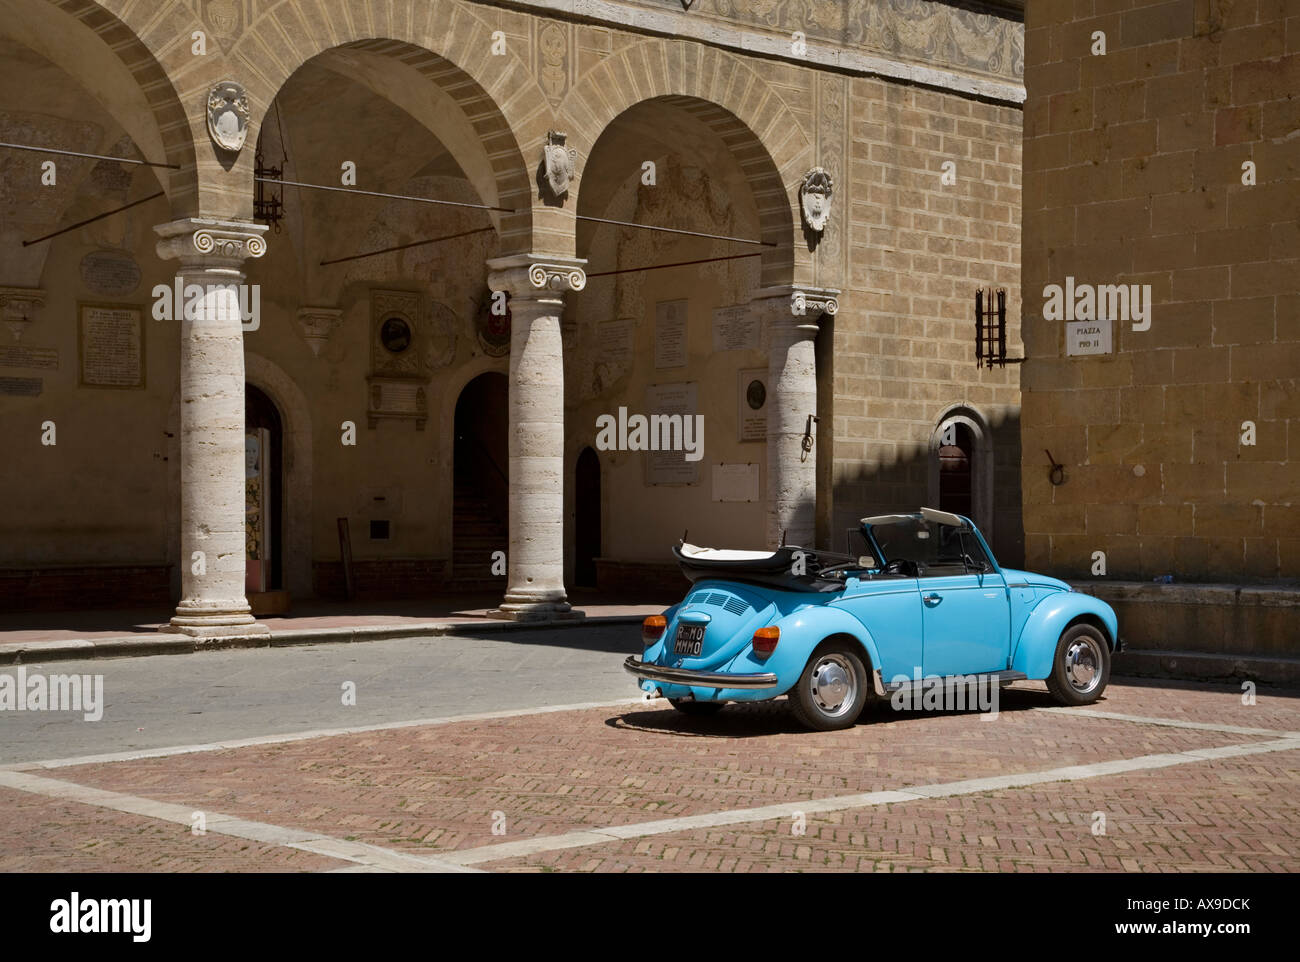 blue open top VW Beetle parked with its top down - Stock Image